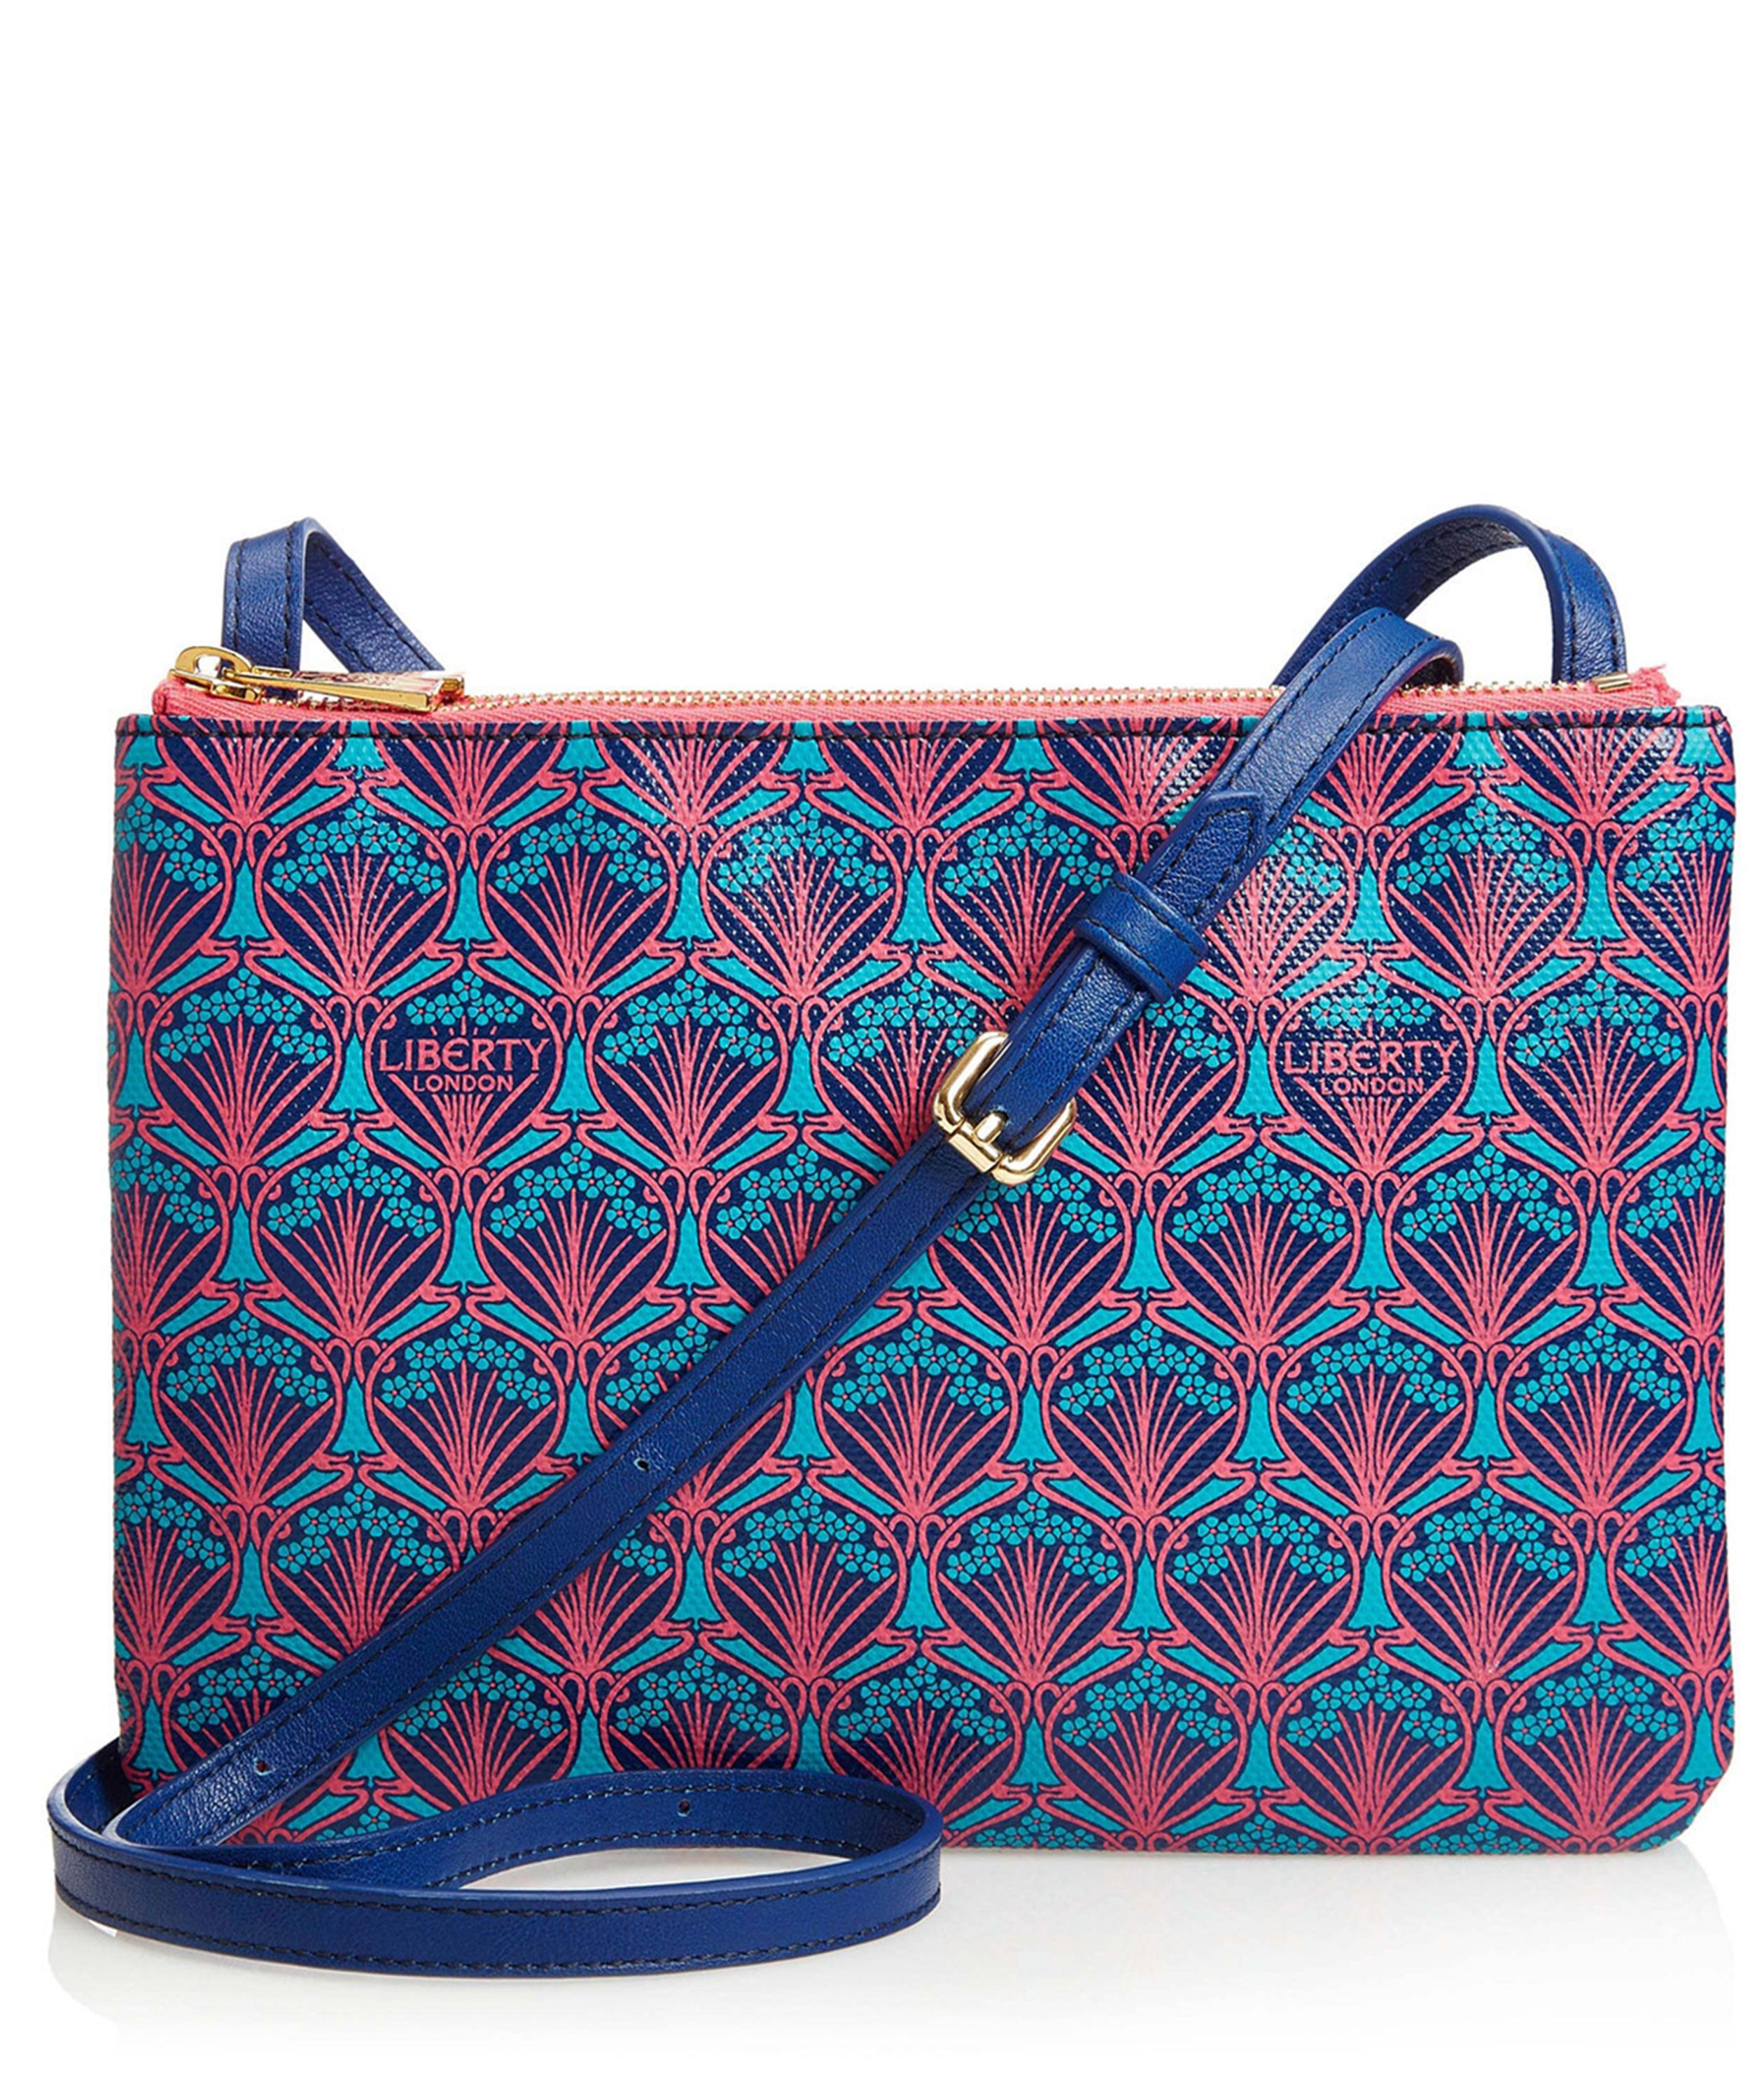 Liberty Bayley Cross Body Pouch In Iphis Canvas in Navy (Blue)